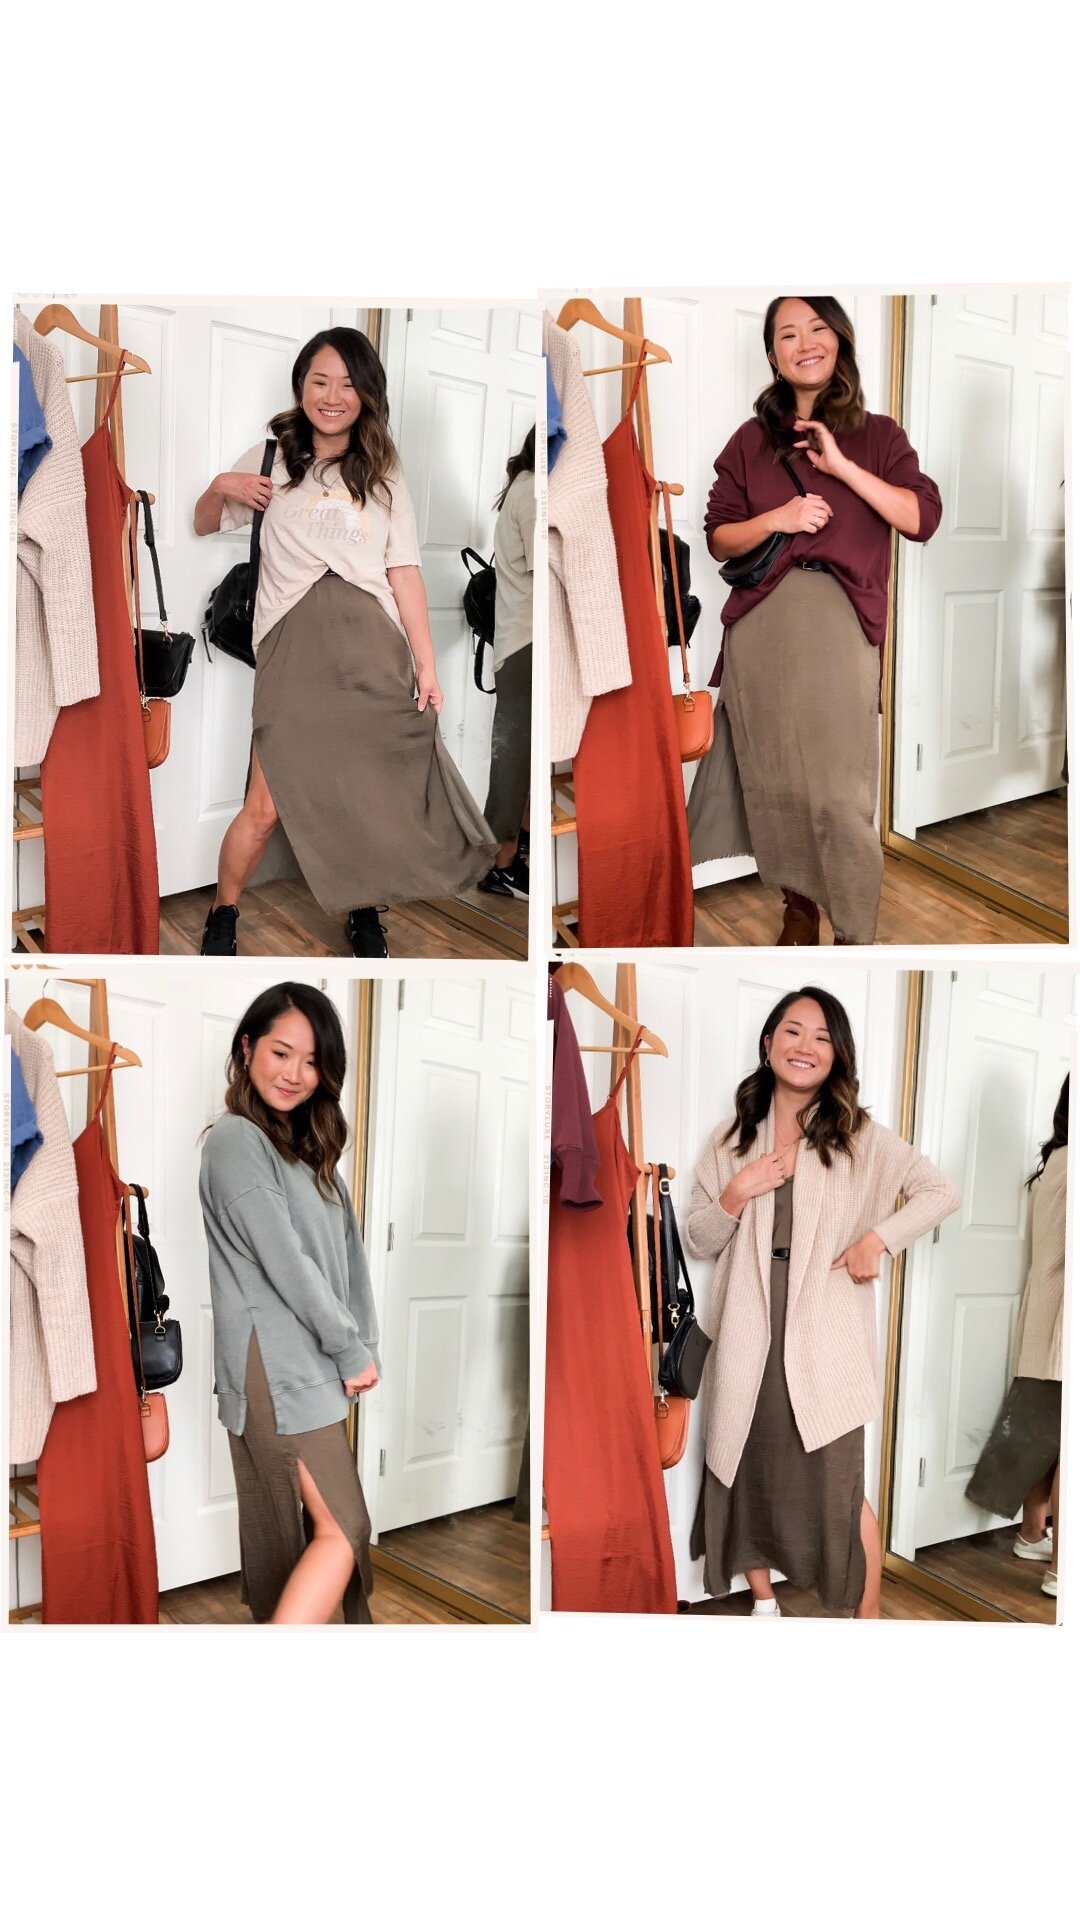 aerie transitional fall outfits.JPG